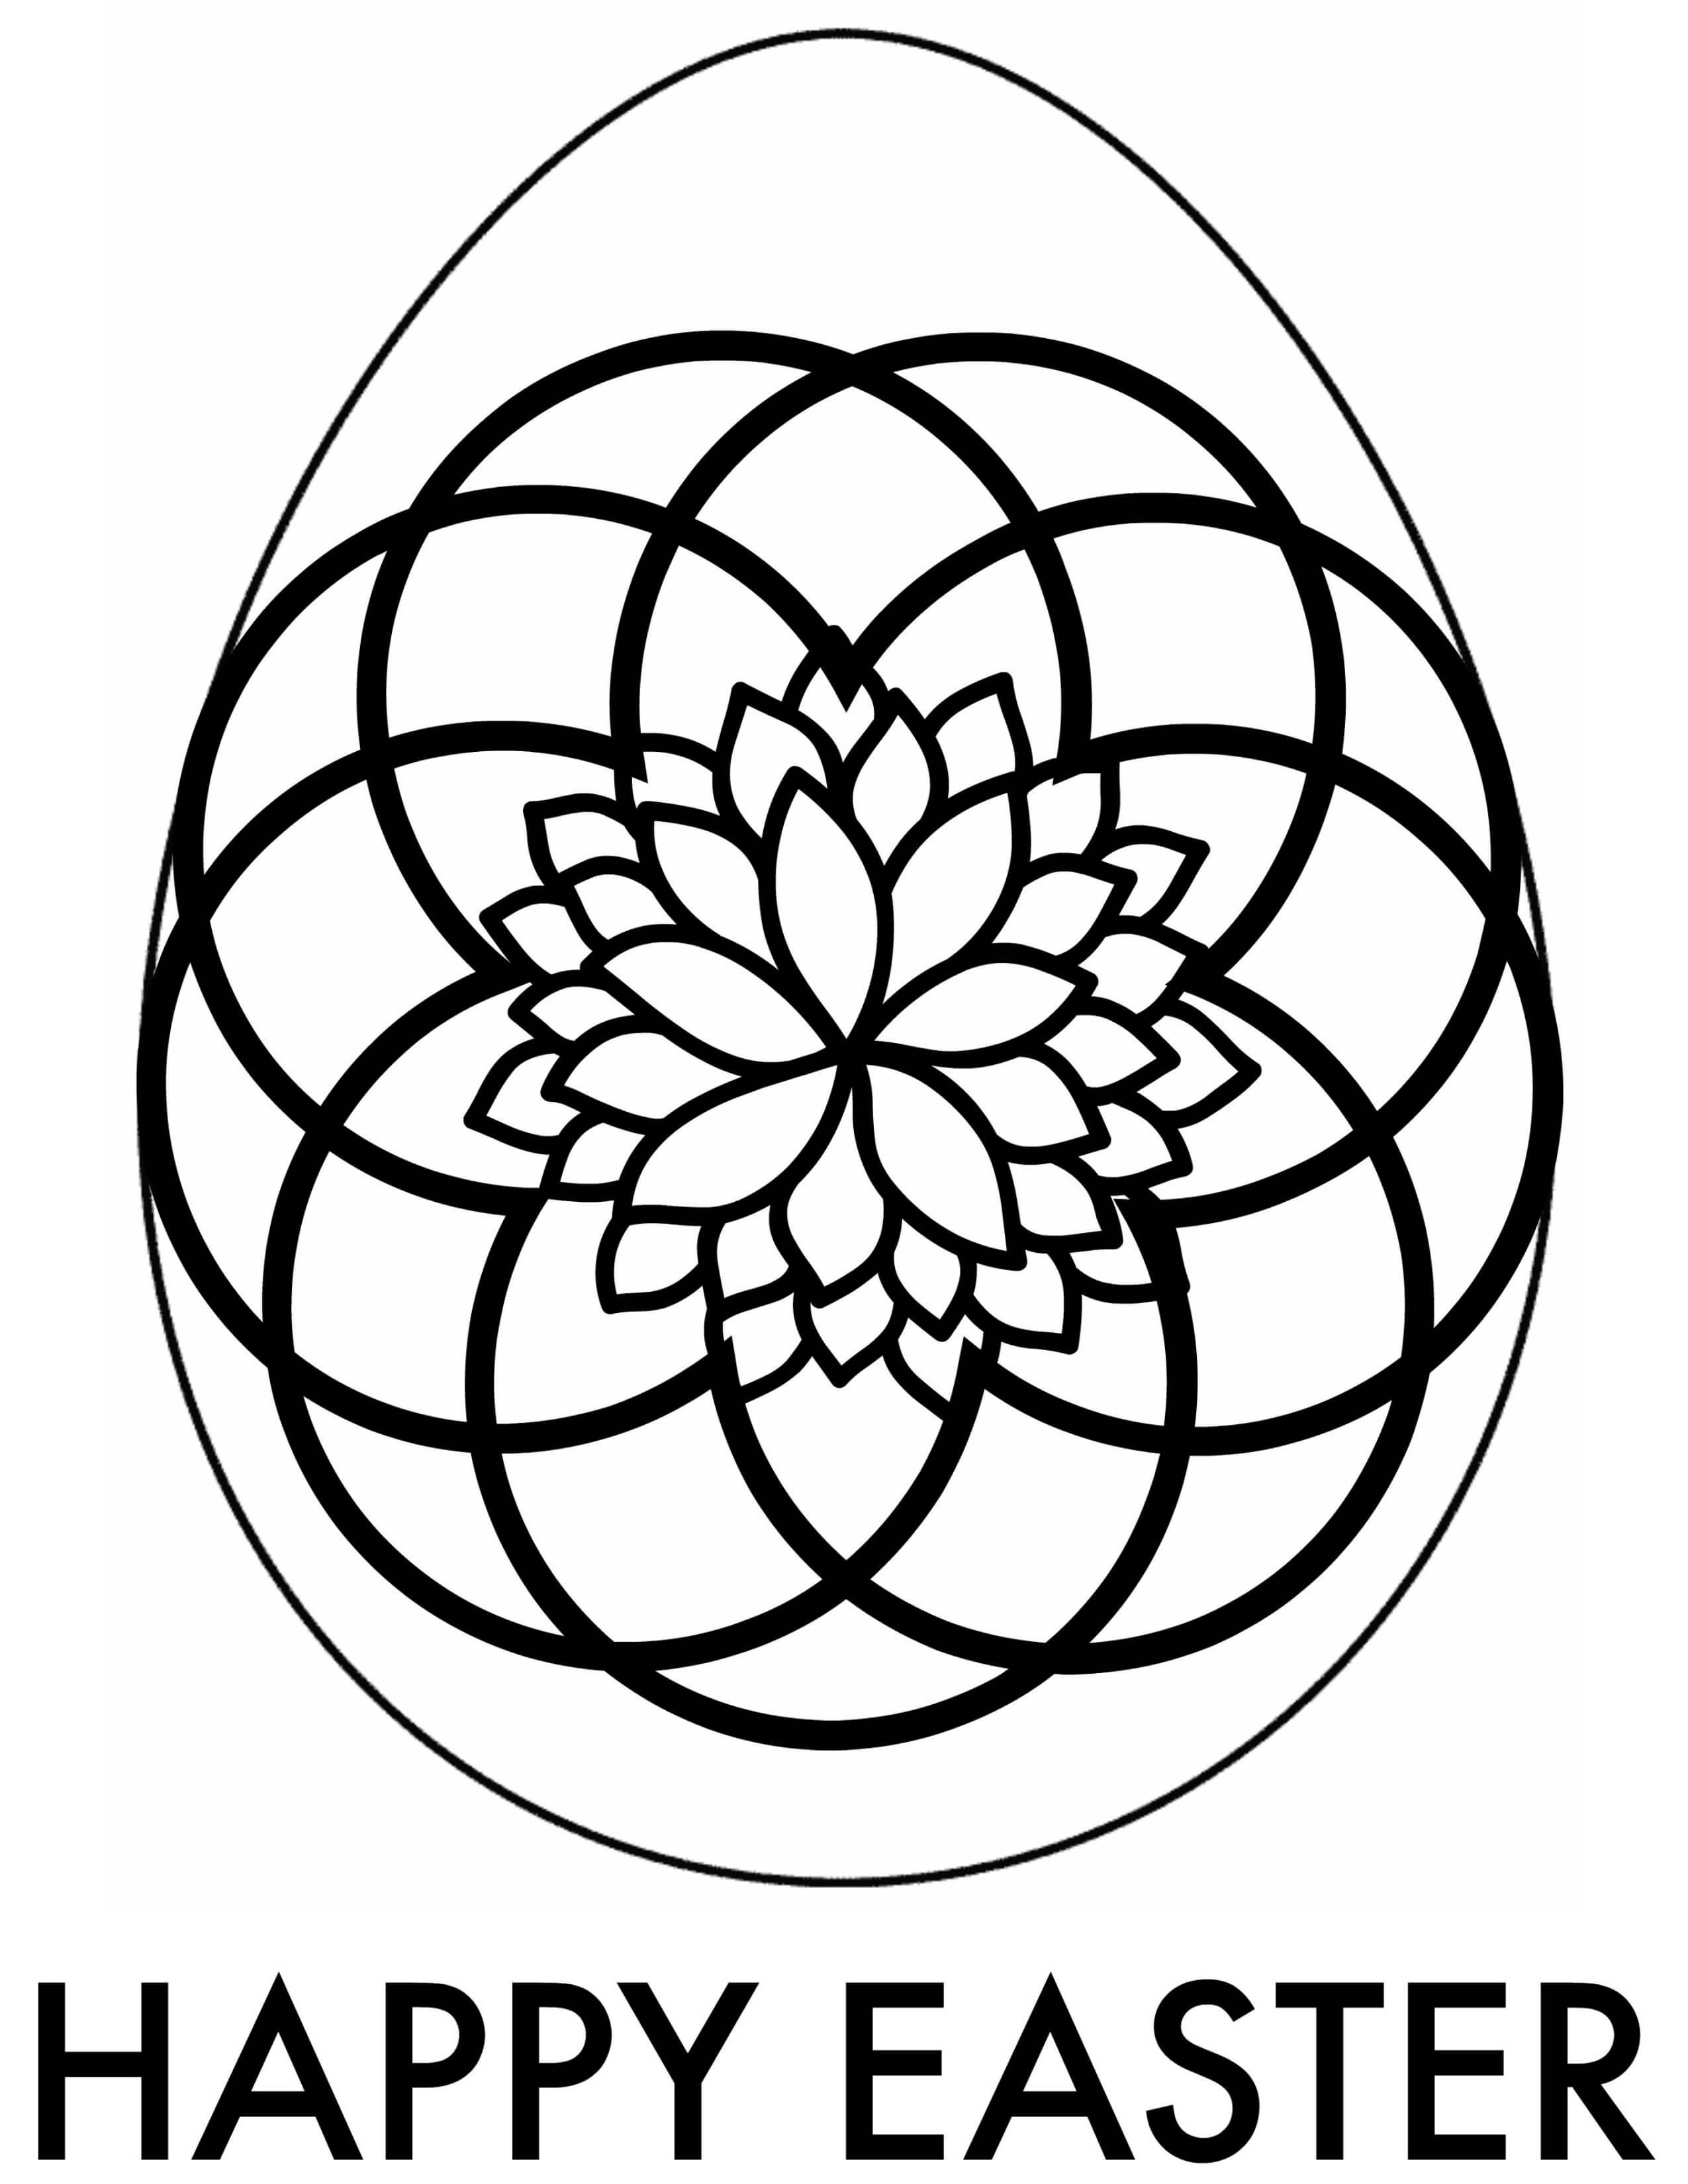 Easter Adult Coloring Pages | Free Printable Downloads